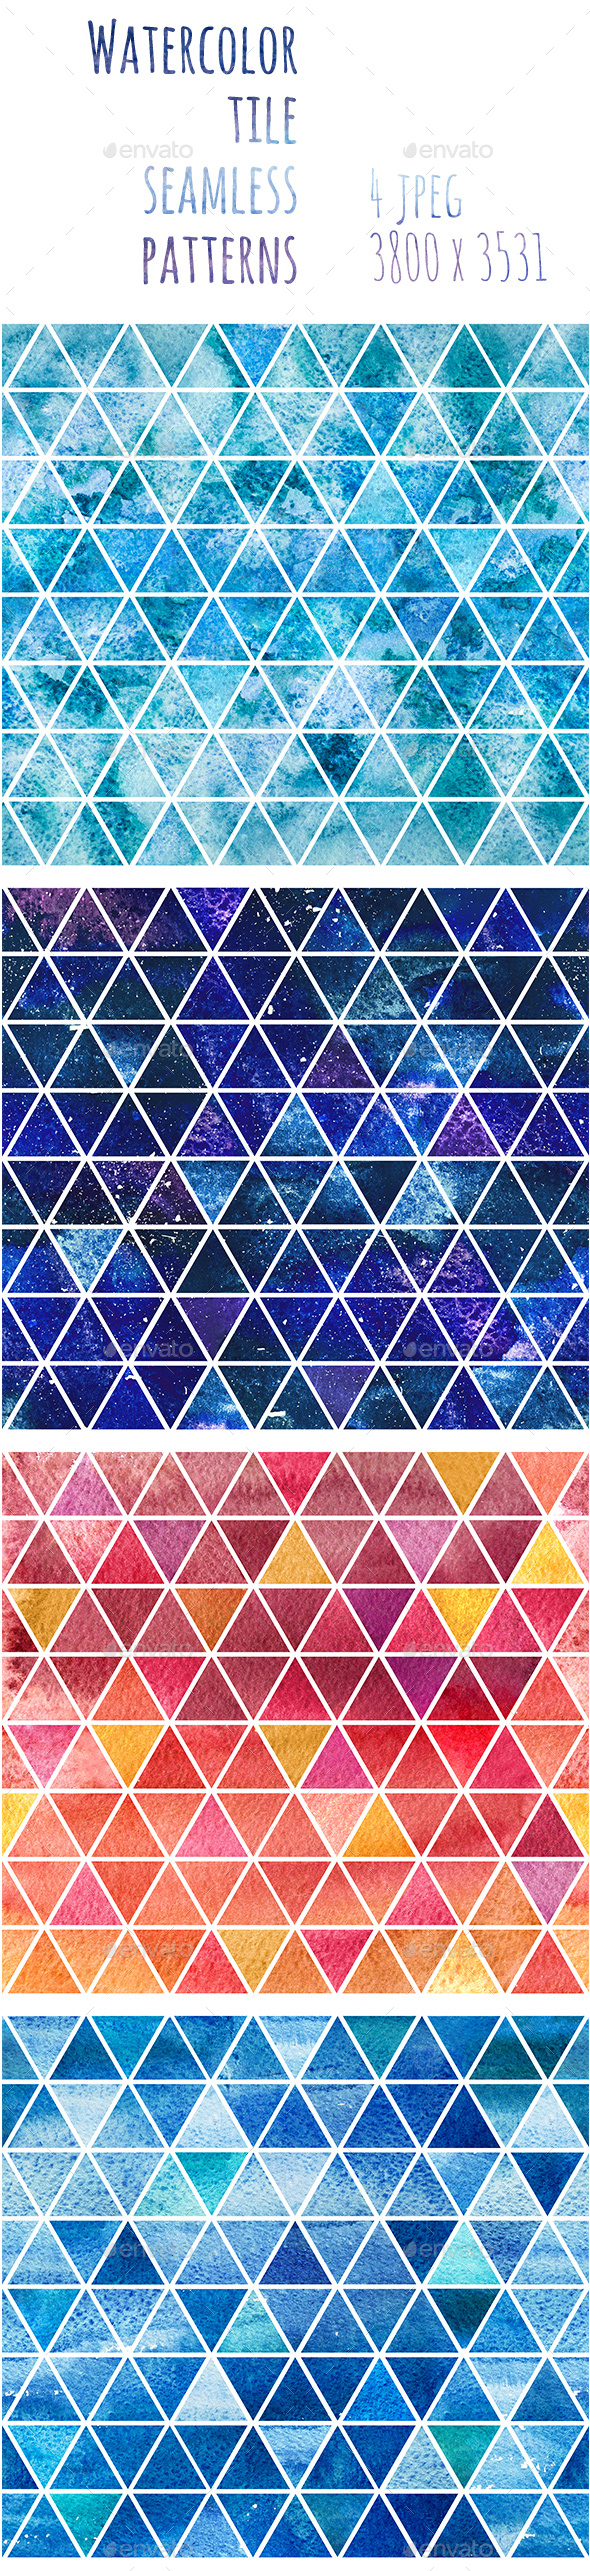 Watercolor Seamless Backgrounds - Patterns Backgrounds